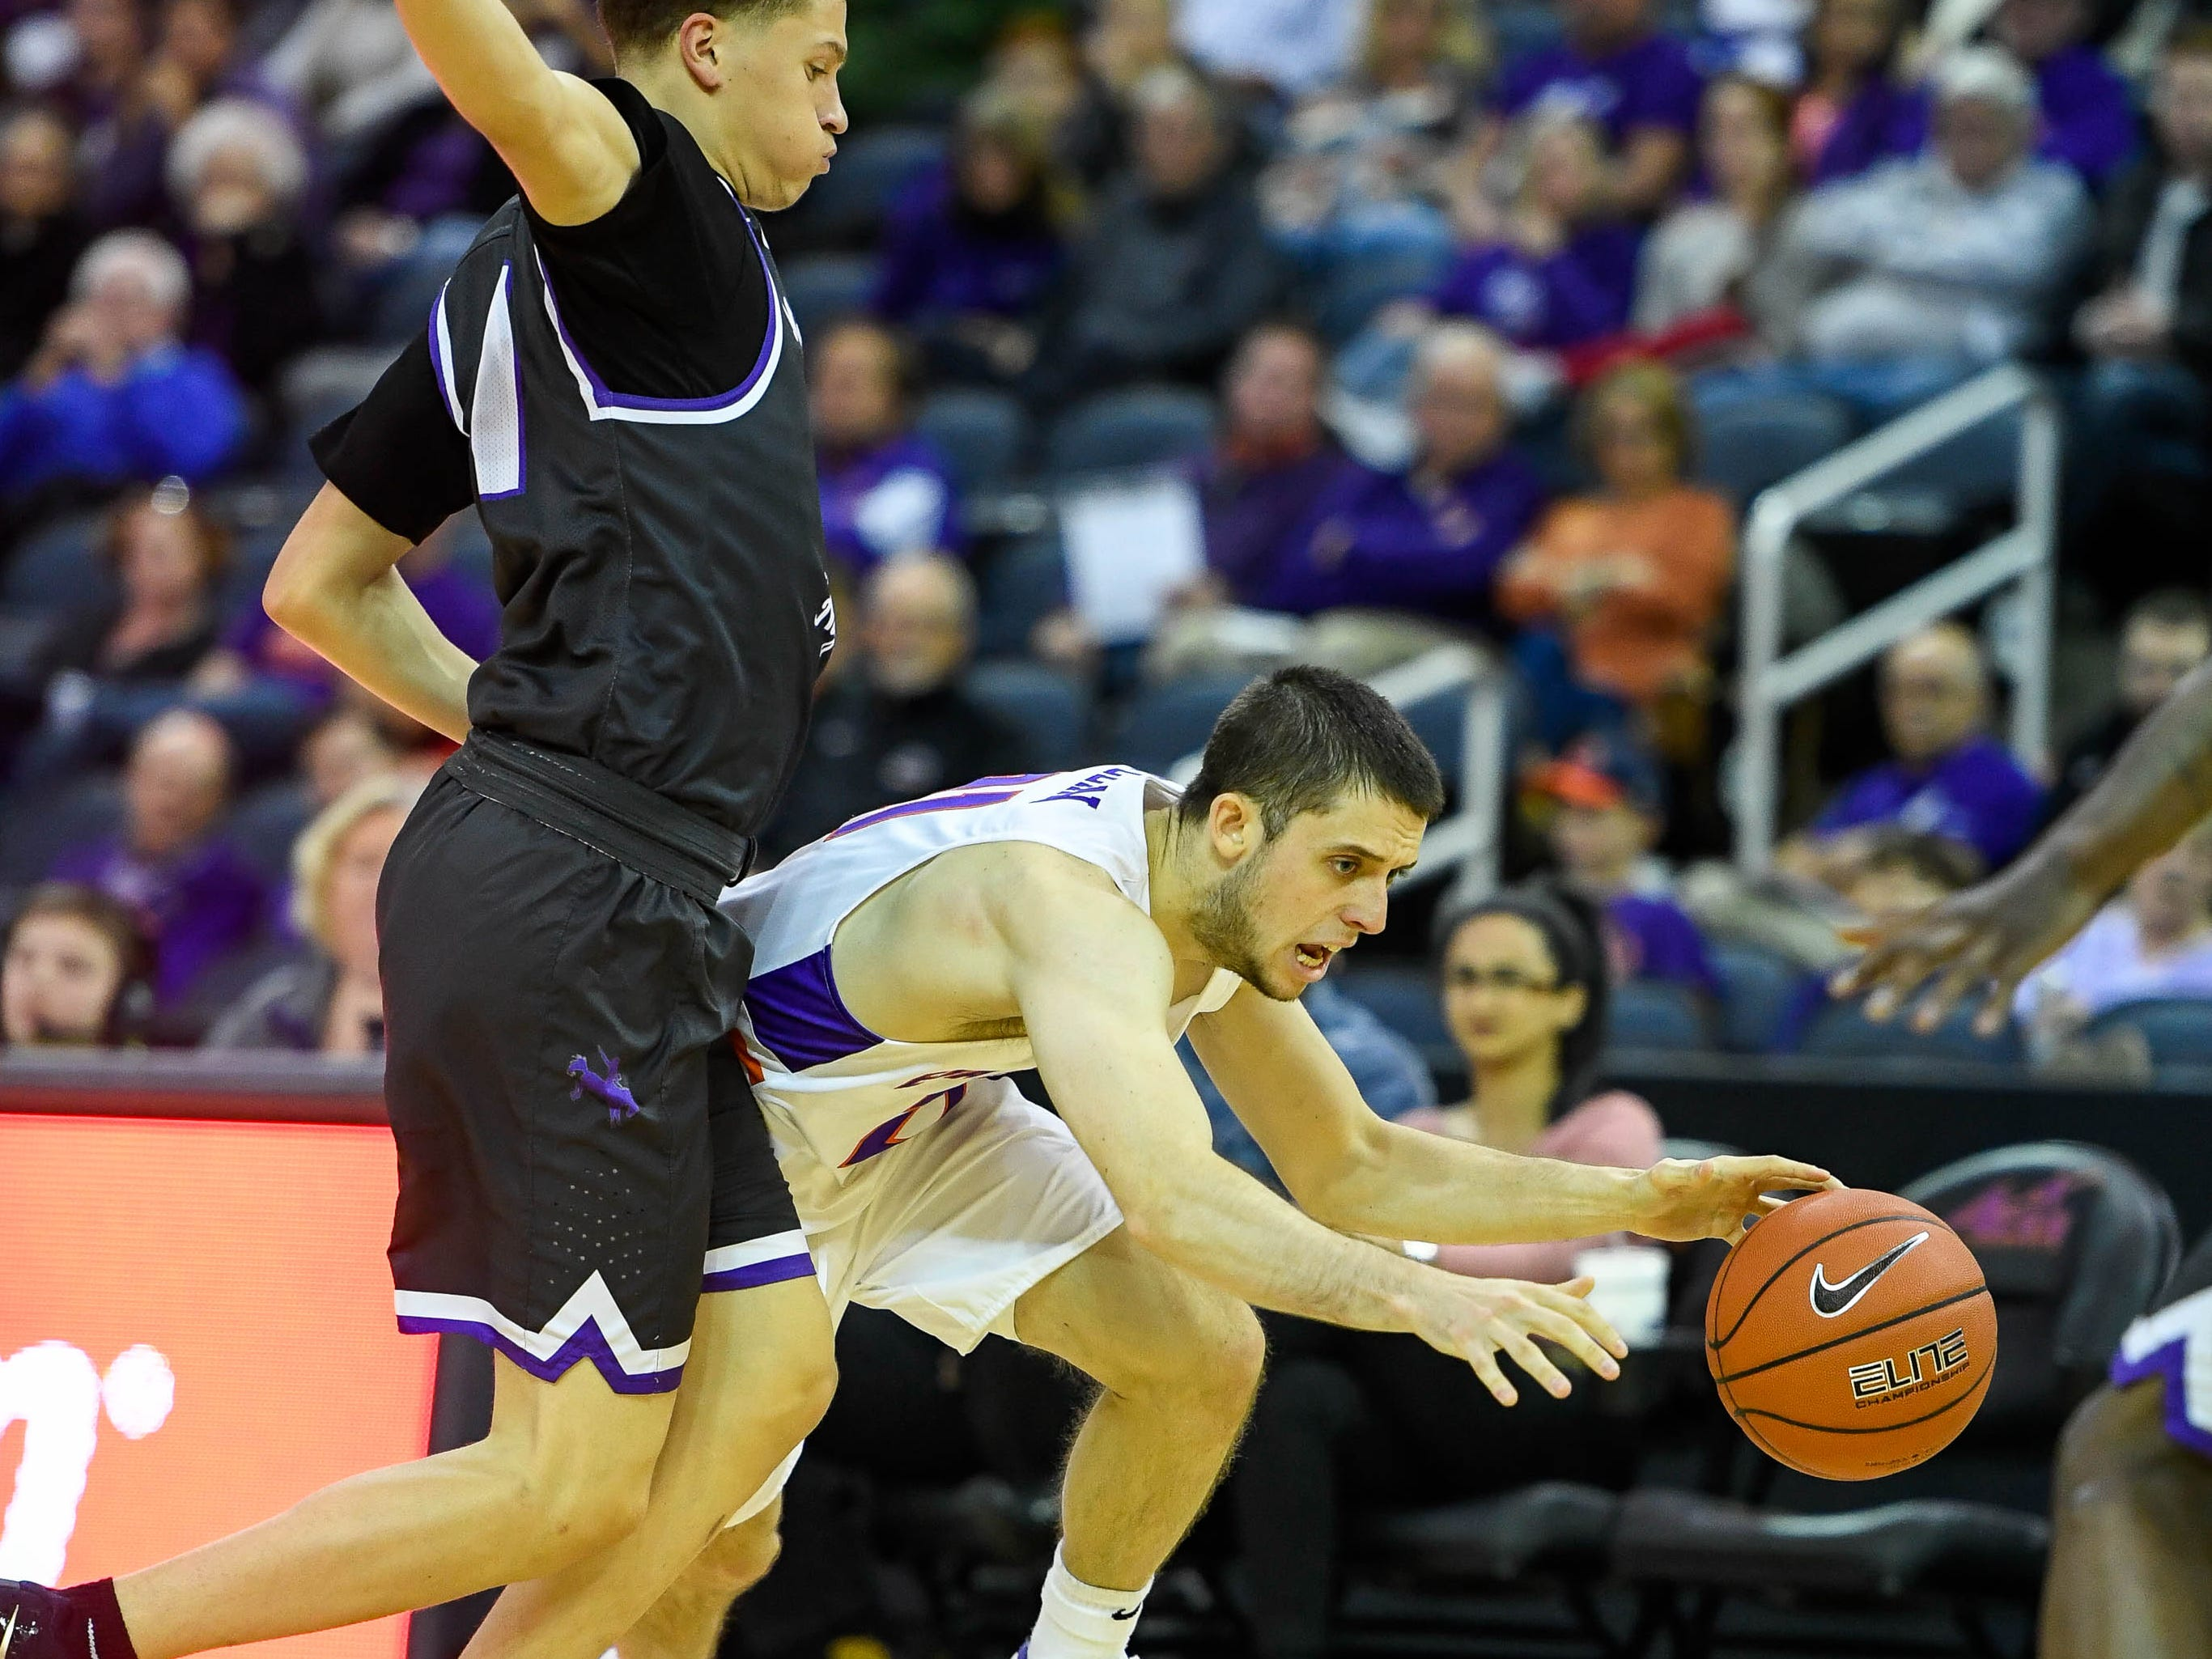 University of Evansville's Shea Feehan (21) drives past New Mexico Highlands' Desmond Carpenter as the University of Evansville Purple Aces play the New Mexico Highlands Cowboys in a exhibition game at the Ford Center Saturday, November 3, 2018.